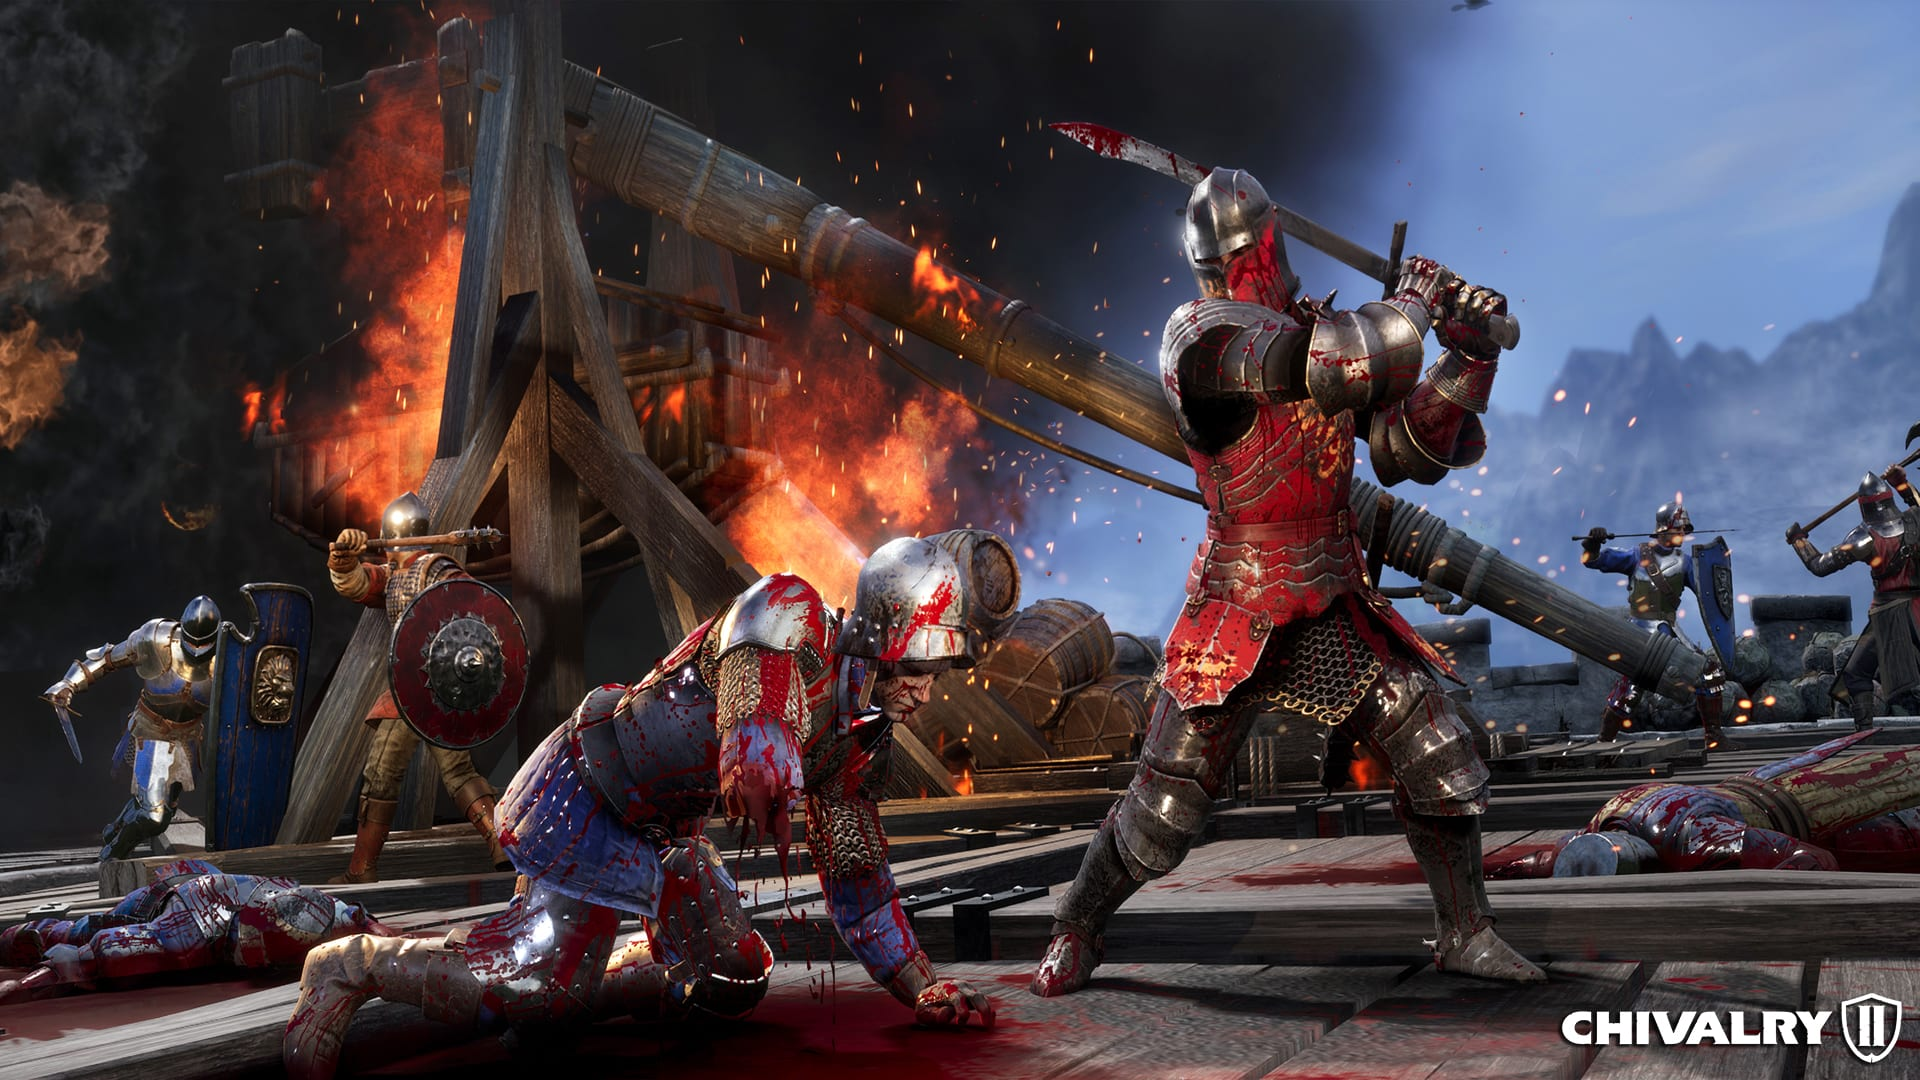 Chivalry 2 Multiplayer Game Be On Xbox Game Pass?